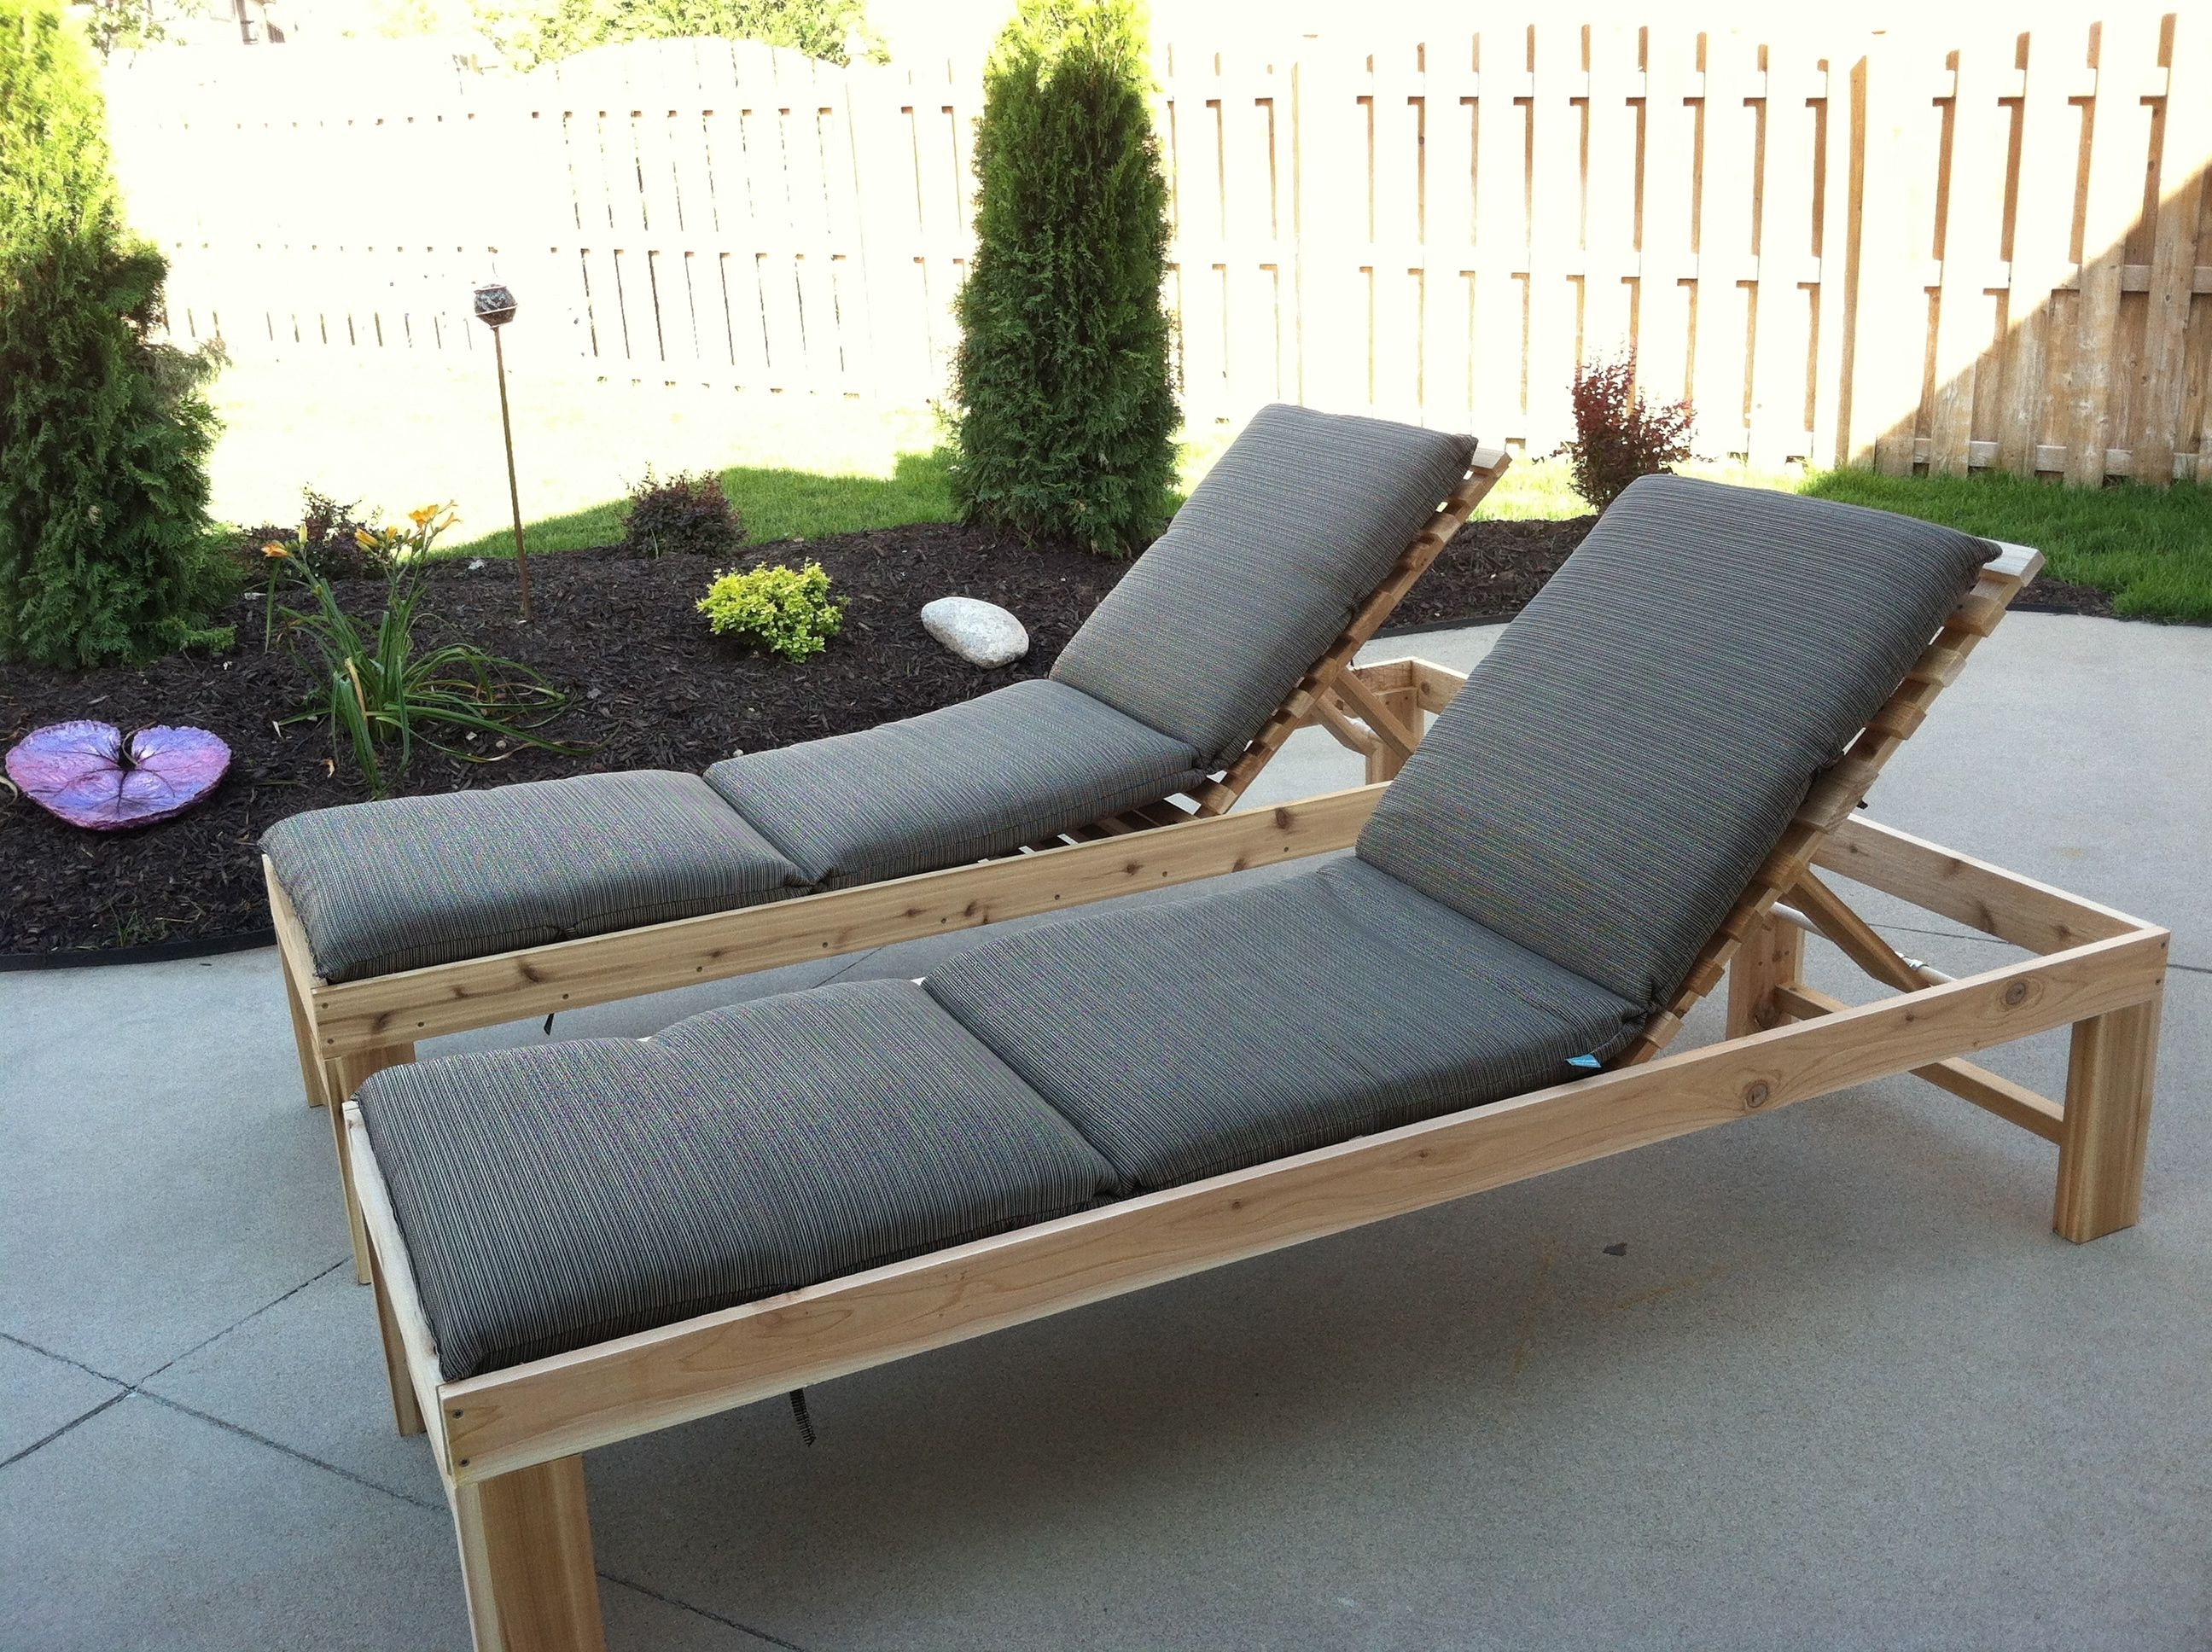 Outdoor: Chic Chaise Lounge Outdoor For Outdoor Furniture Ideas With Regard To Well Liked Modern Outdoor Chaise Lounge Chairs (View 11 of 15)